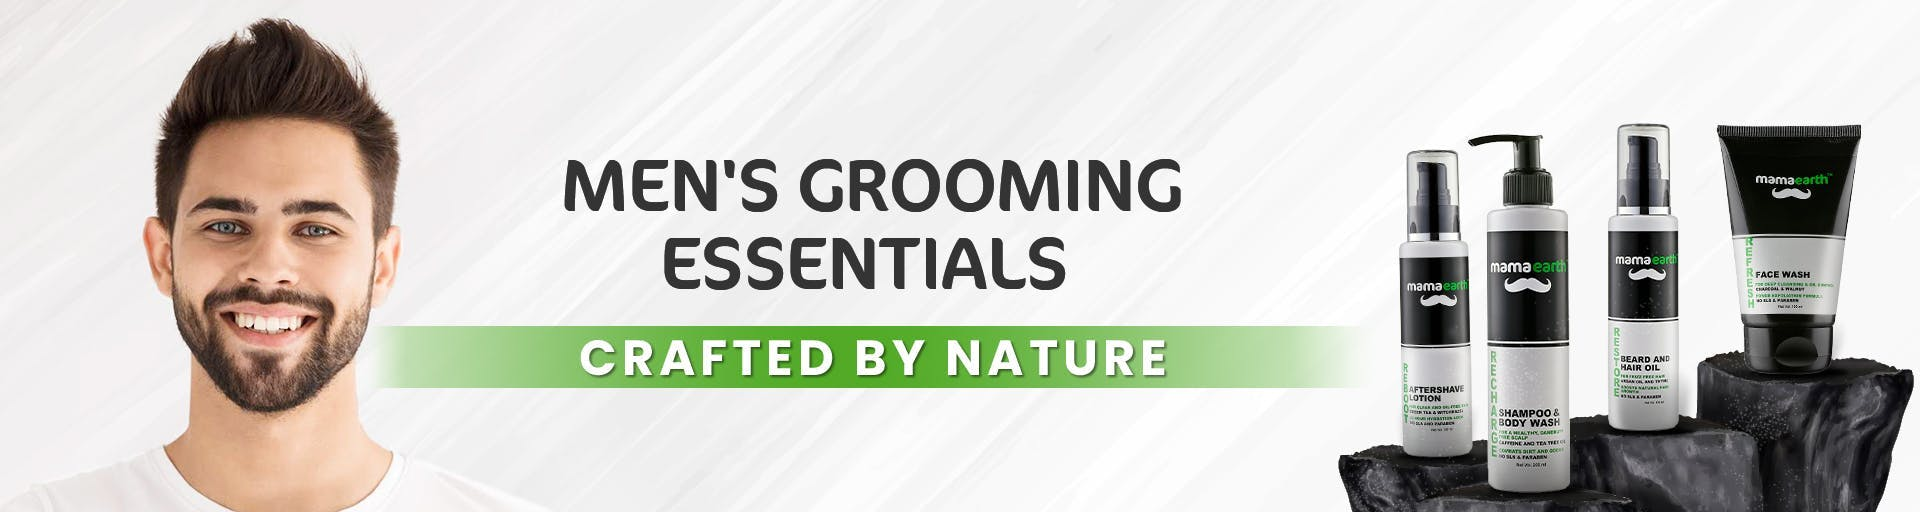 mamaearth.in - Men's Grooming Essentials starting at just ₹329